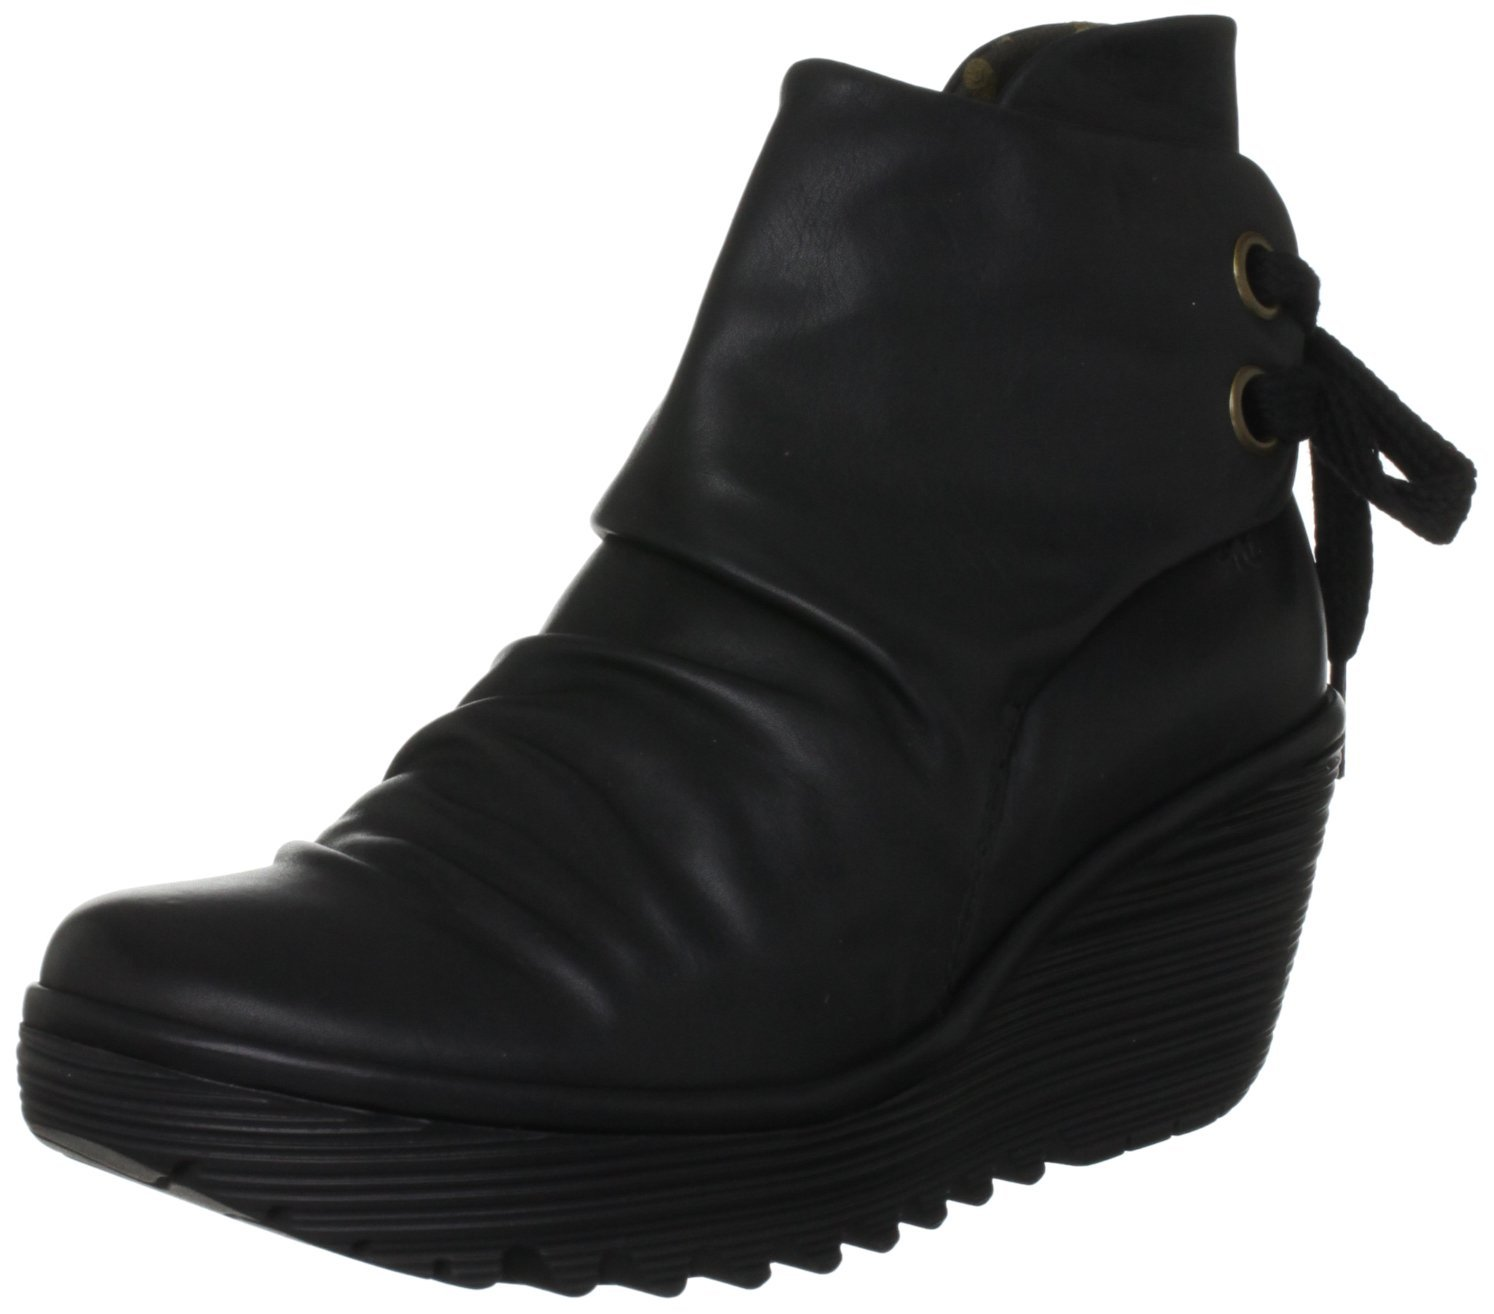 Fly-london-Yama-Black-Leather-New-Womens-Wedge-Ankle-Shoes-Boots